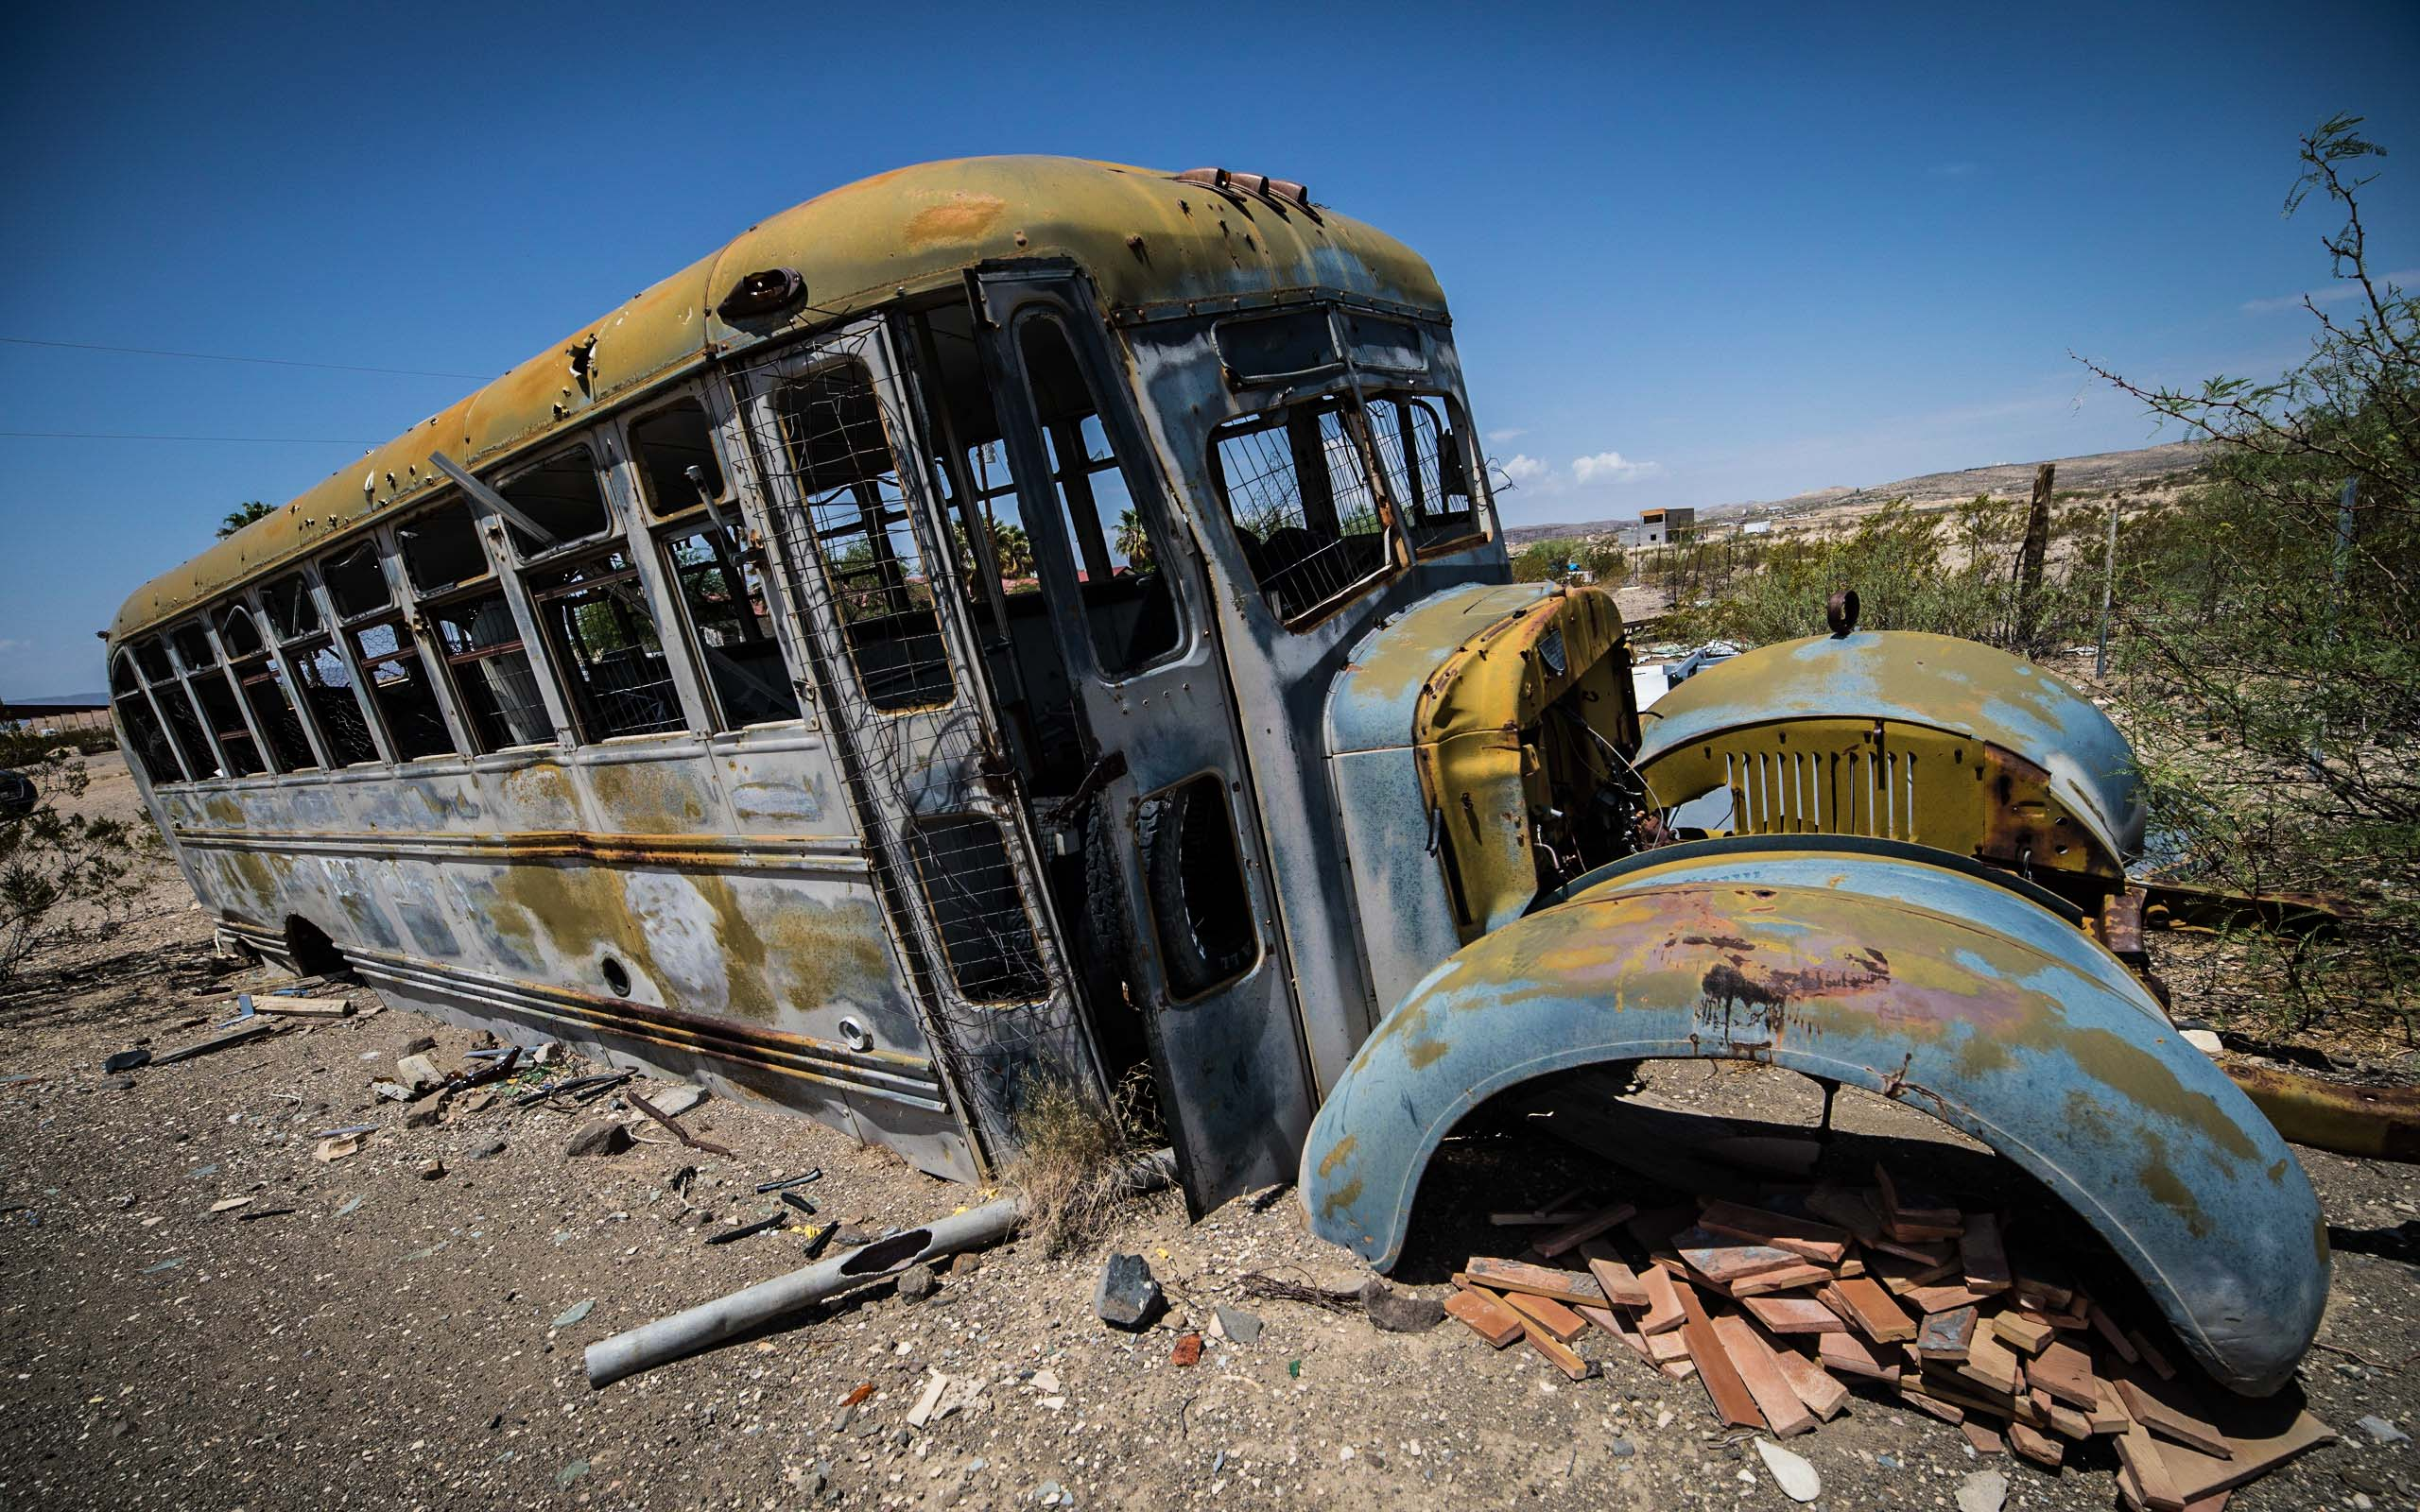 decaying school bus, Terlingua